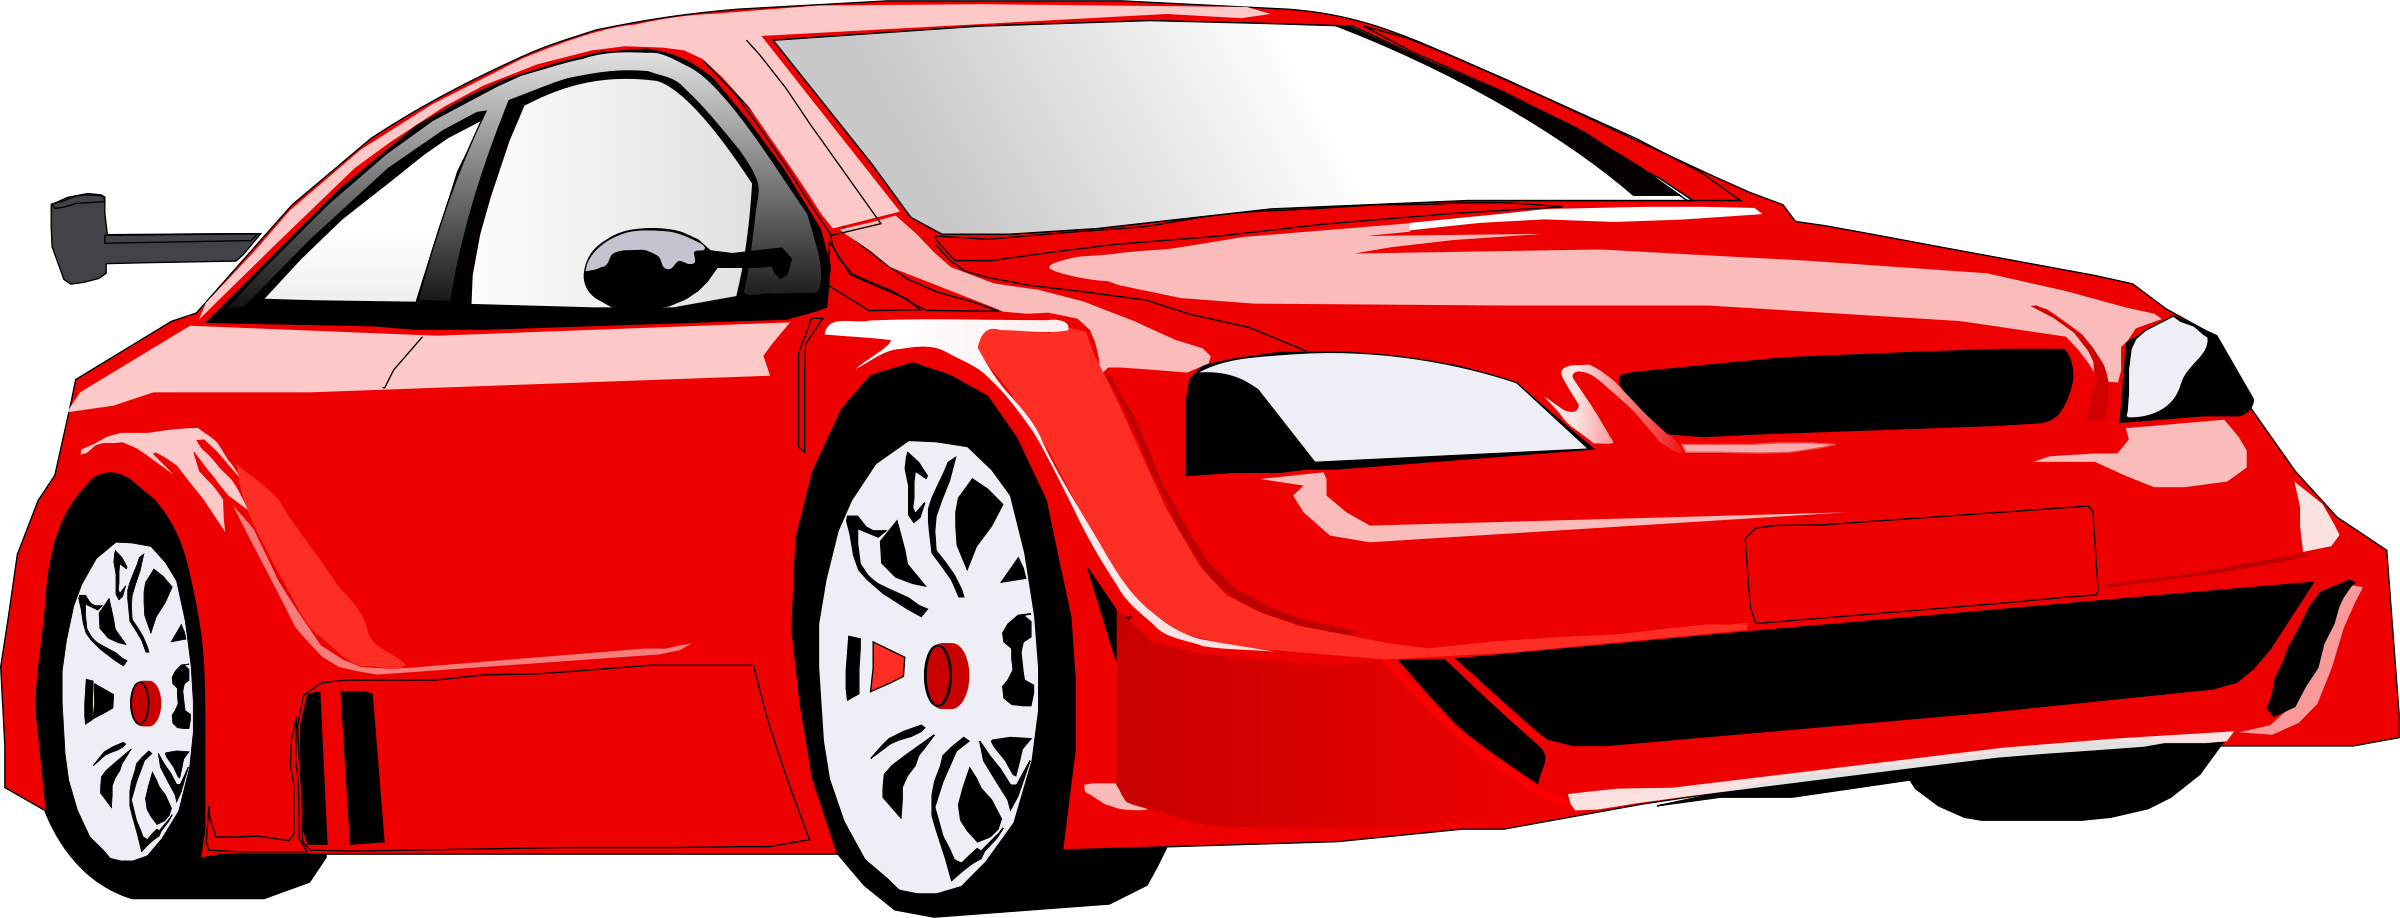 Car Clipart Free Large Images